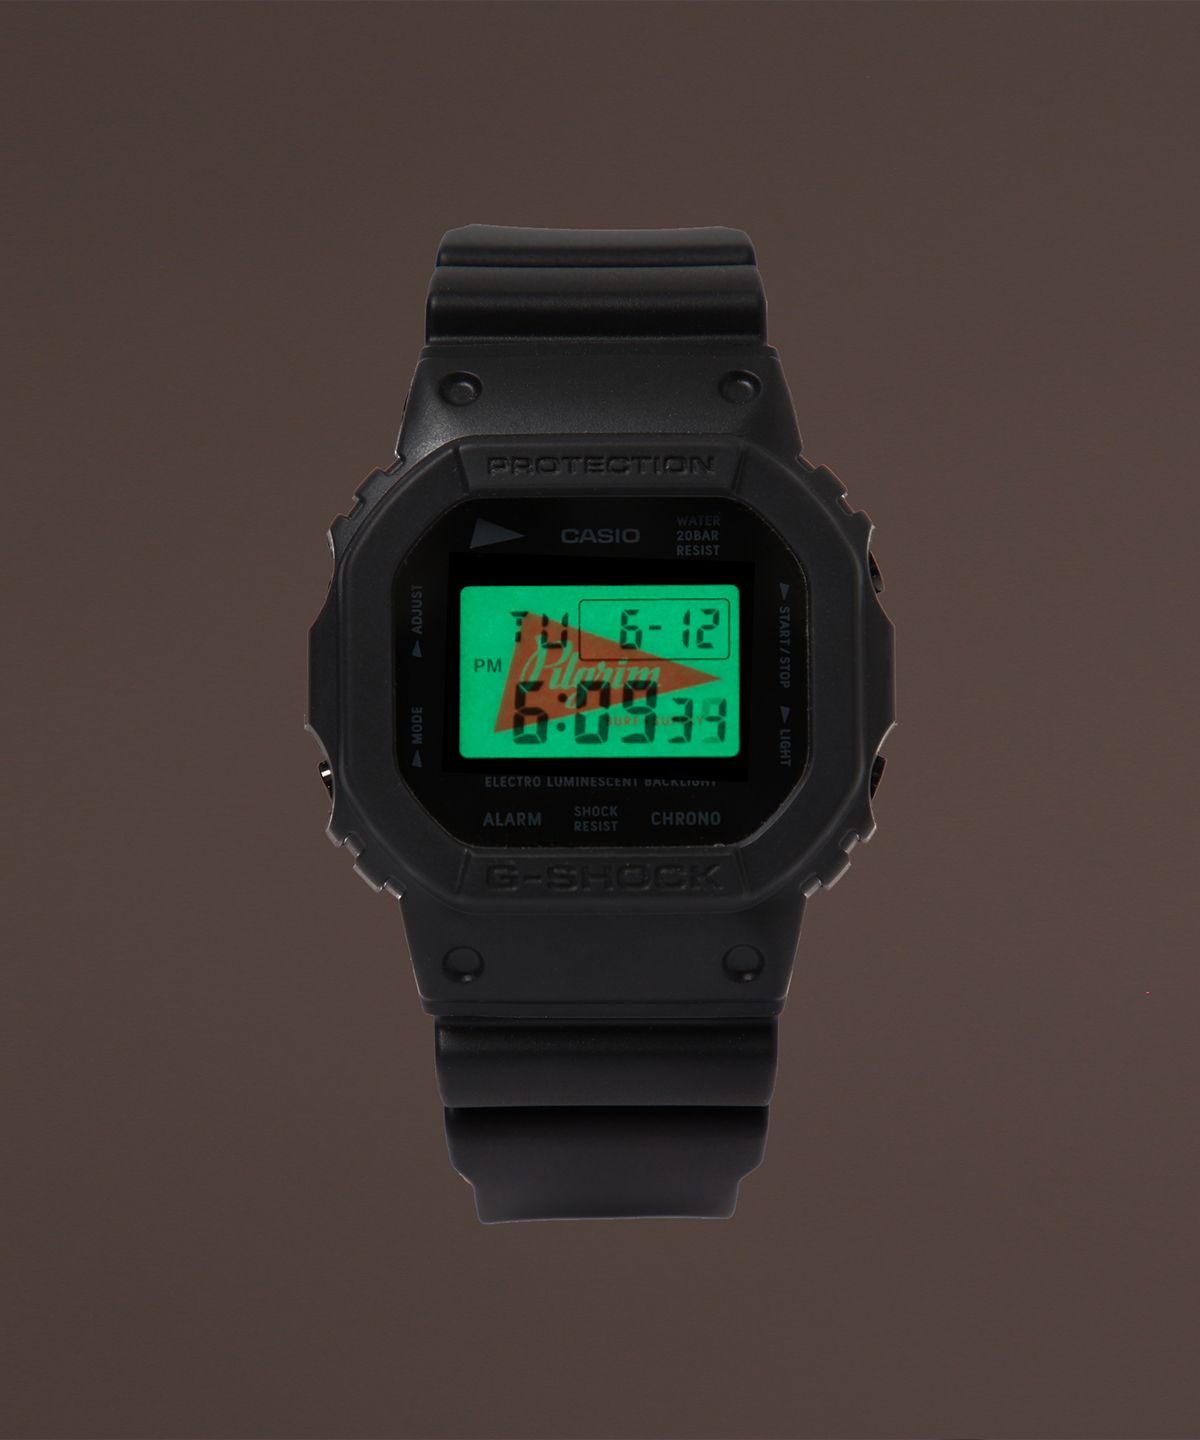 d0a33184eae6 G-Shock DW-5600 x Pilgrim Surf and Supply Collaboration